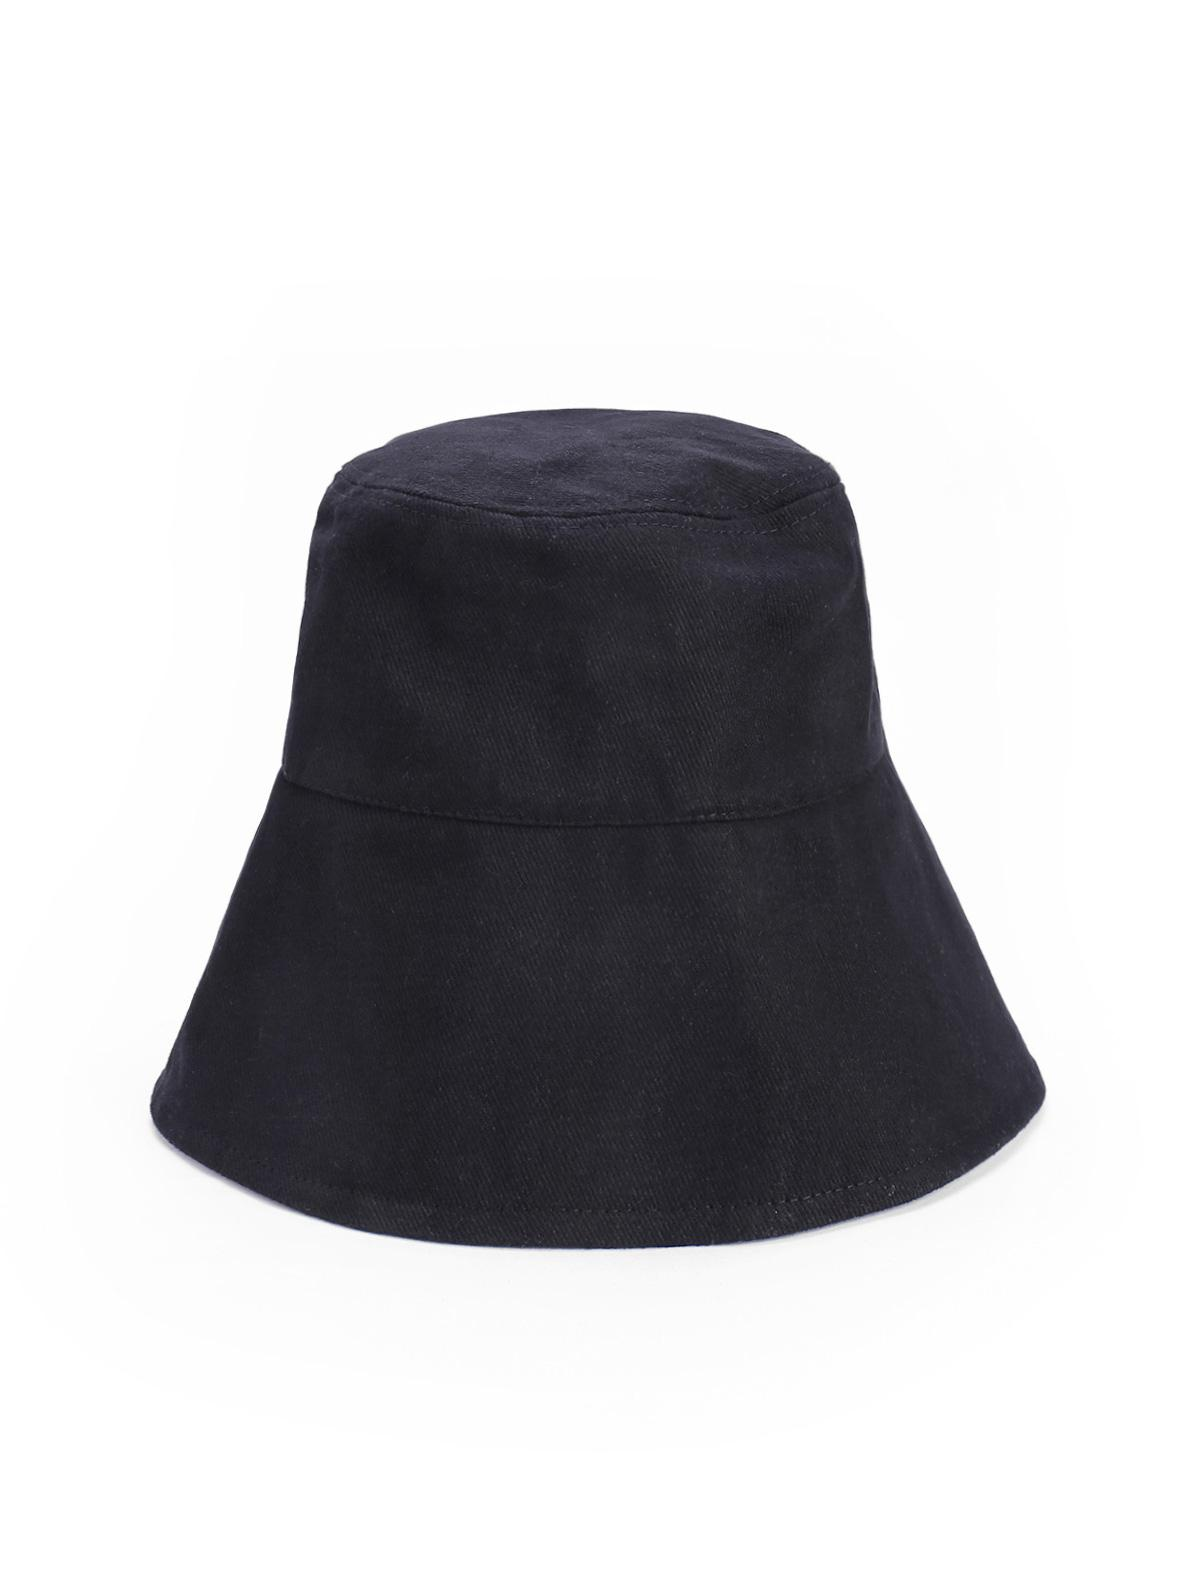 Outdoor Lace Up Sun Bucket Hat